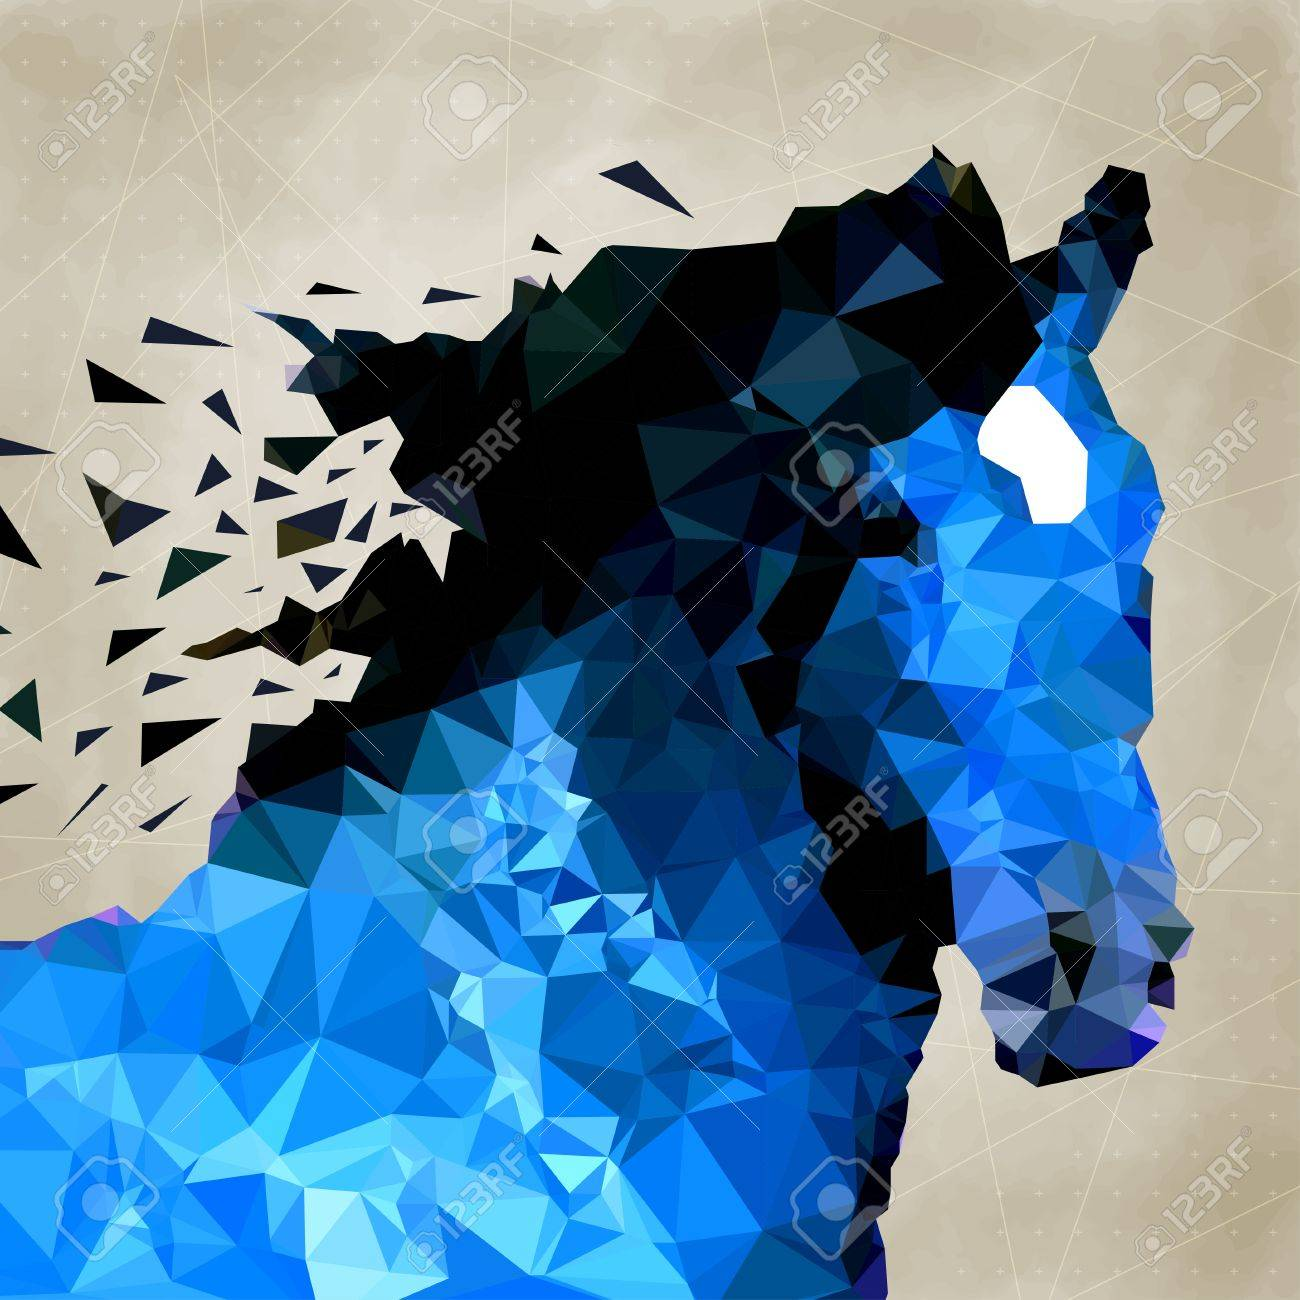 Vector triangle abstract horse of geometric shapes. Sign of the blue horse. Stock Vector - 23012149